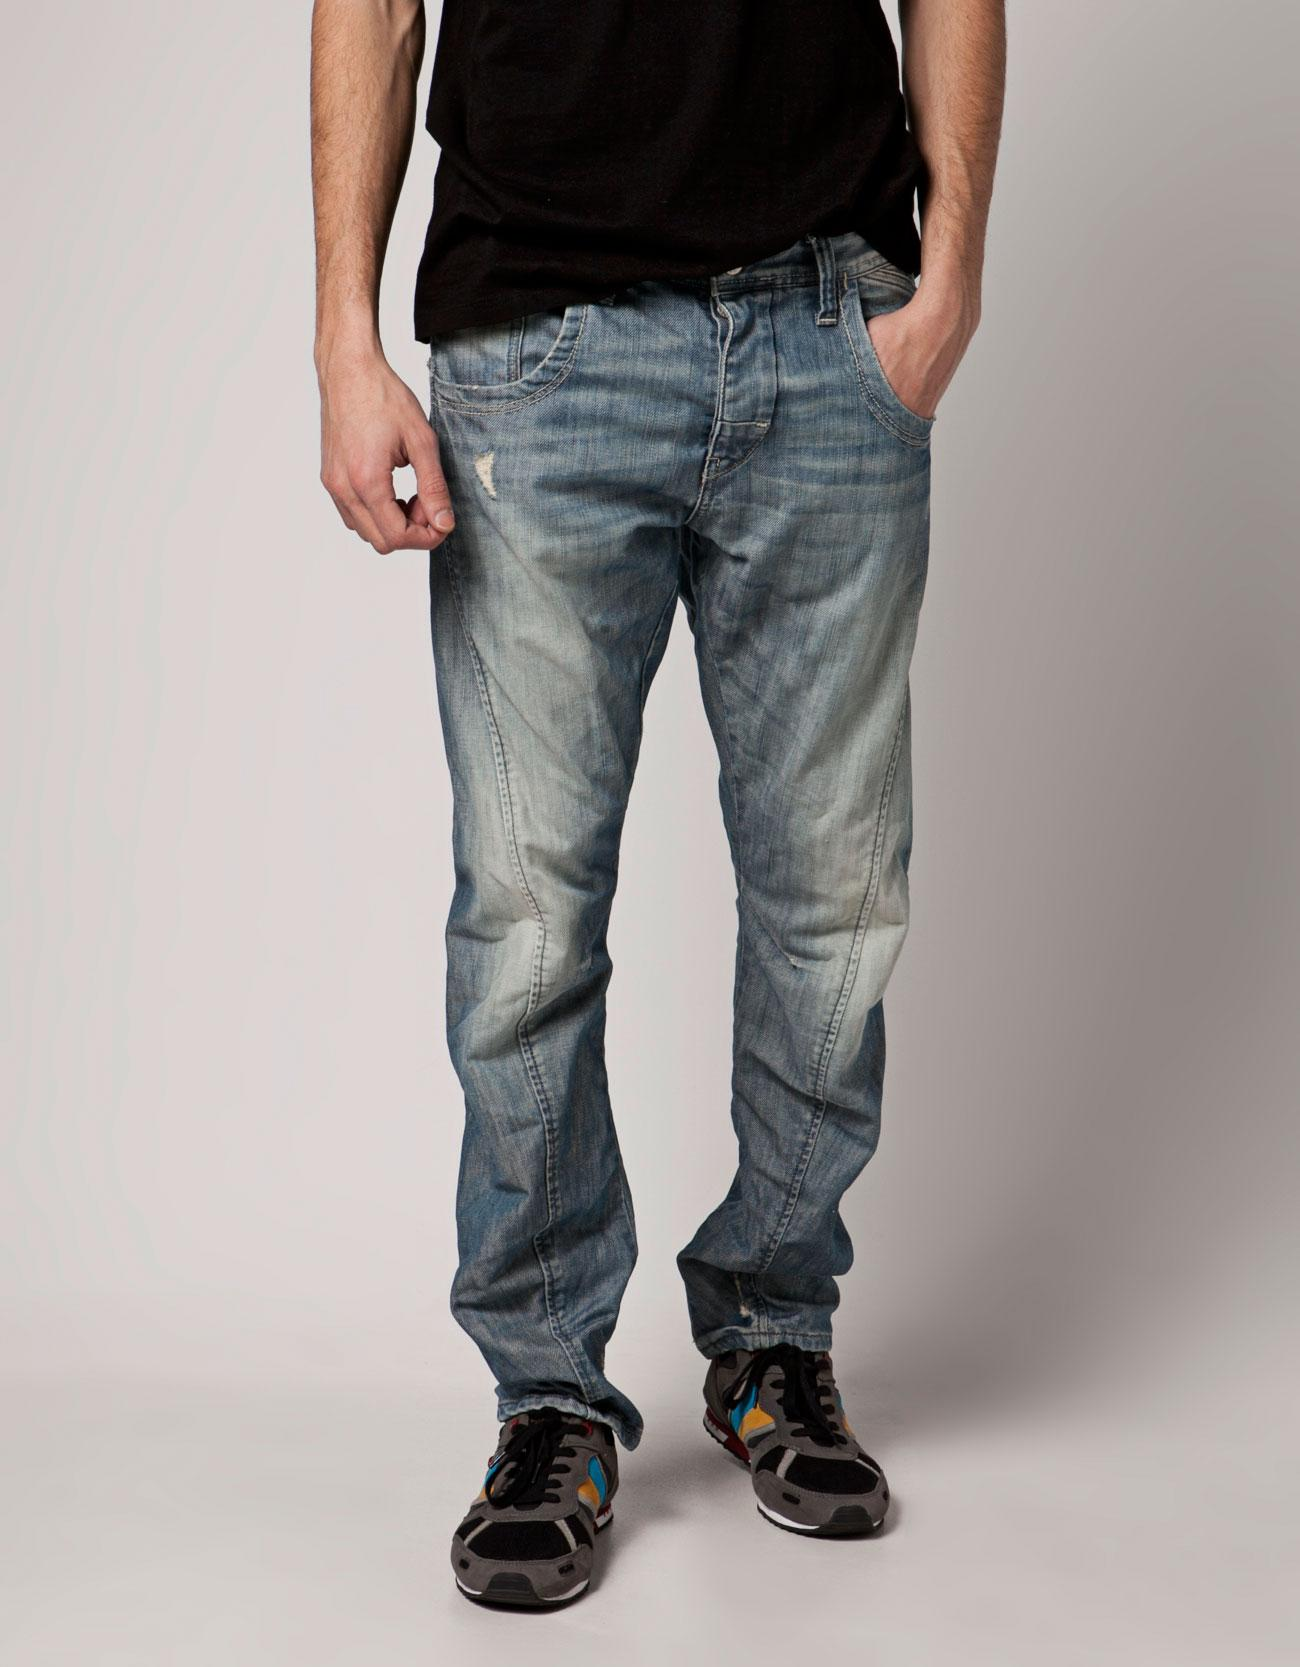 Bershka Russian Federation - Twister jeans with stitching